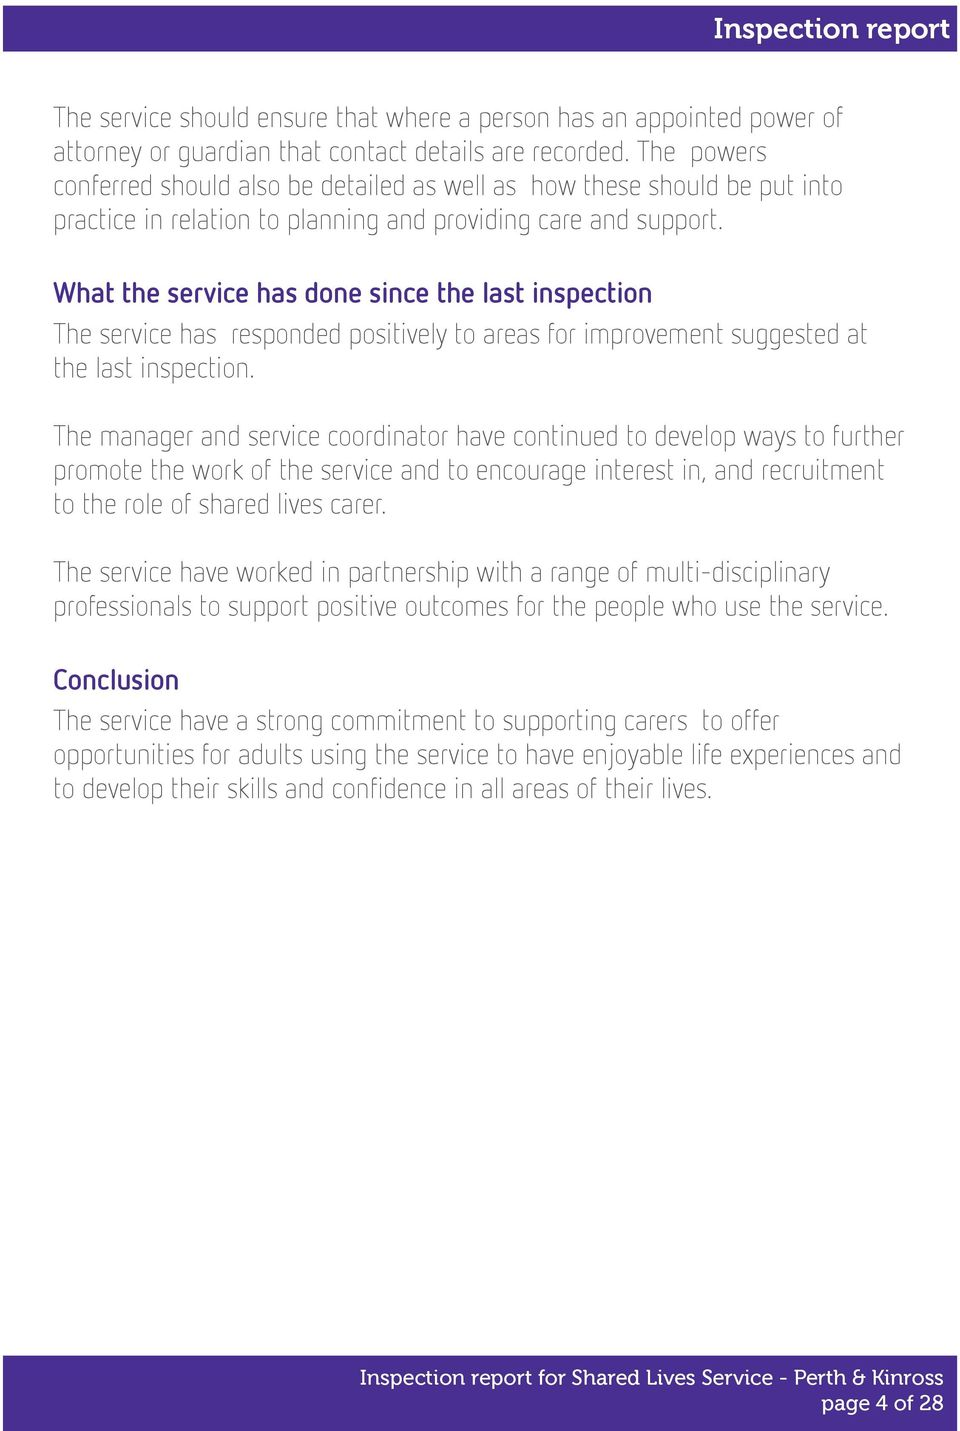 What the service has done since the last inspection The service has responded positively to areas for improvement suggested at the last inspection.